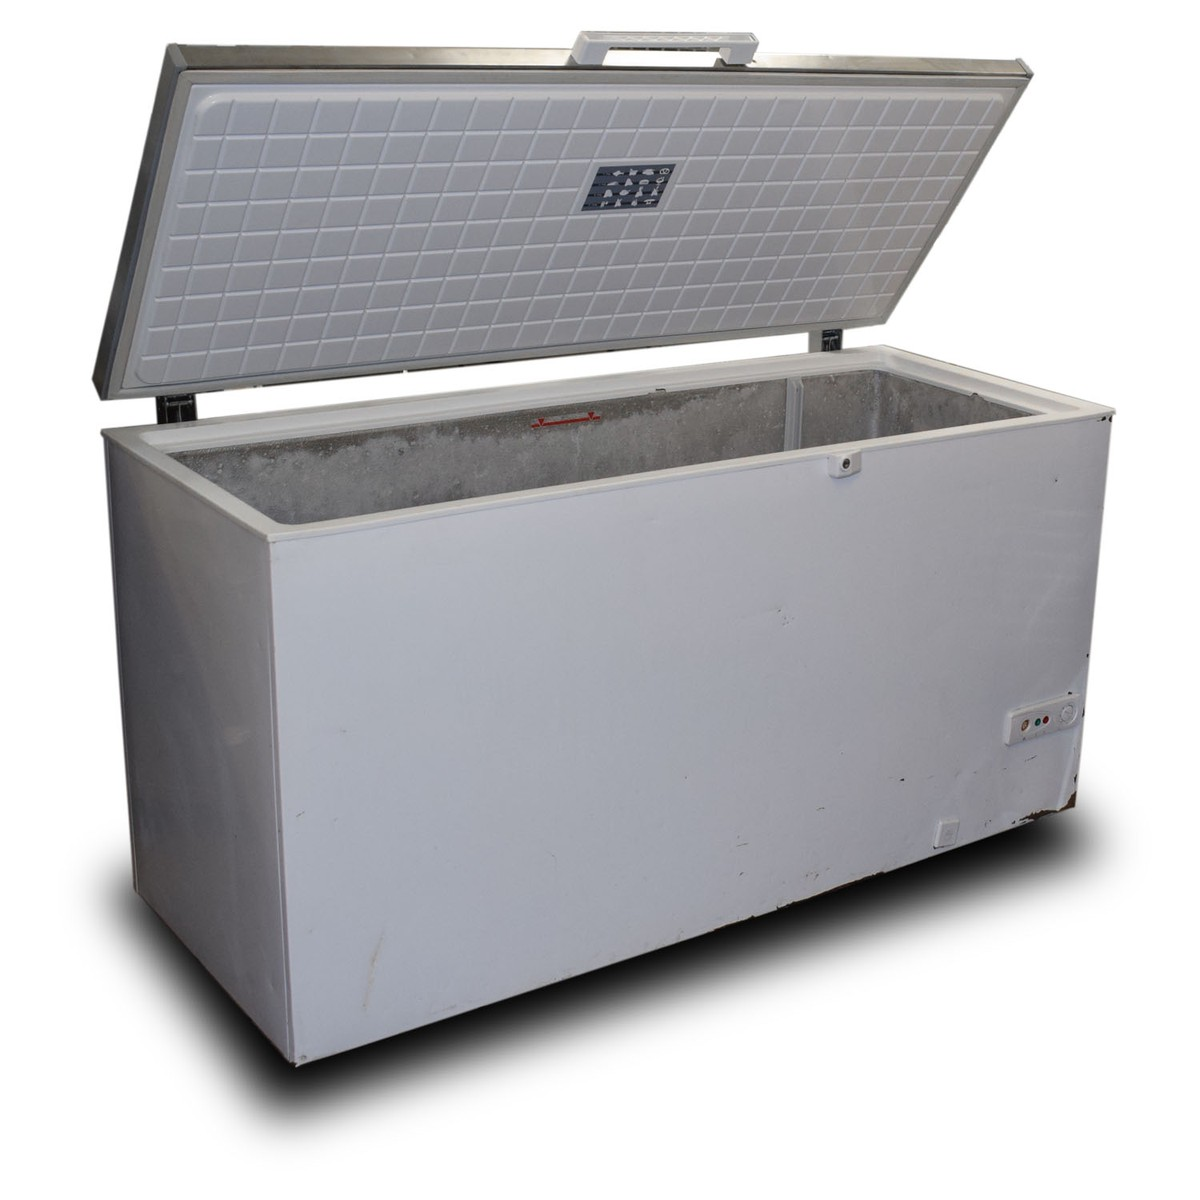 used chest freezer uk chest freezer for sale - Chest Freezers On Sale